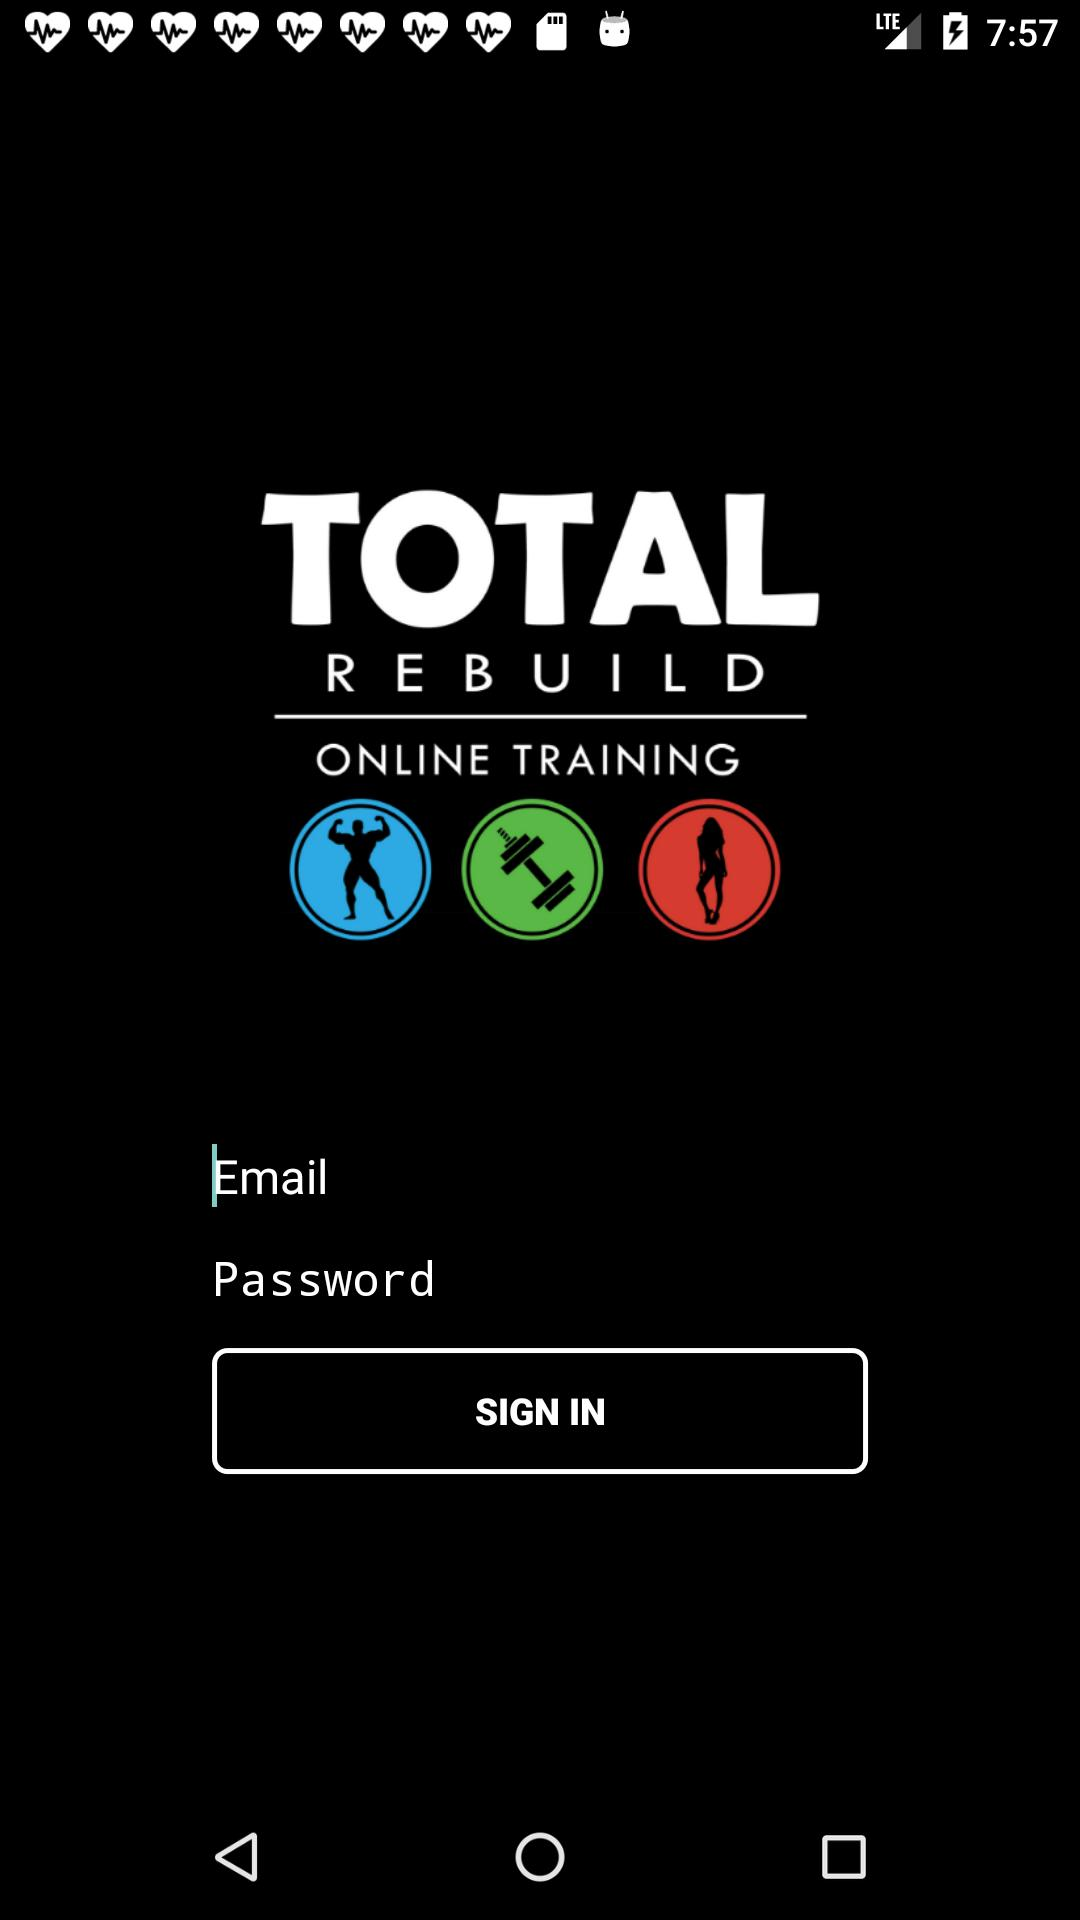 Total Rebuild Online Training for Android - APK Download